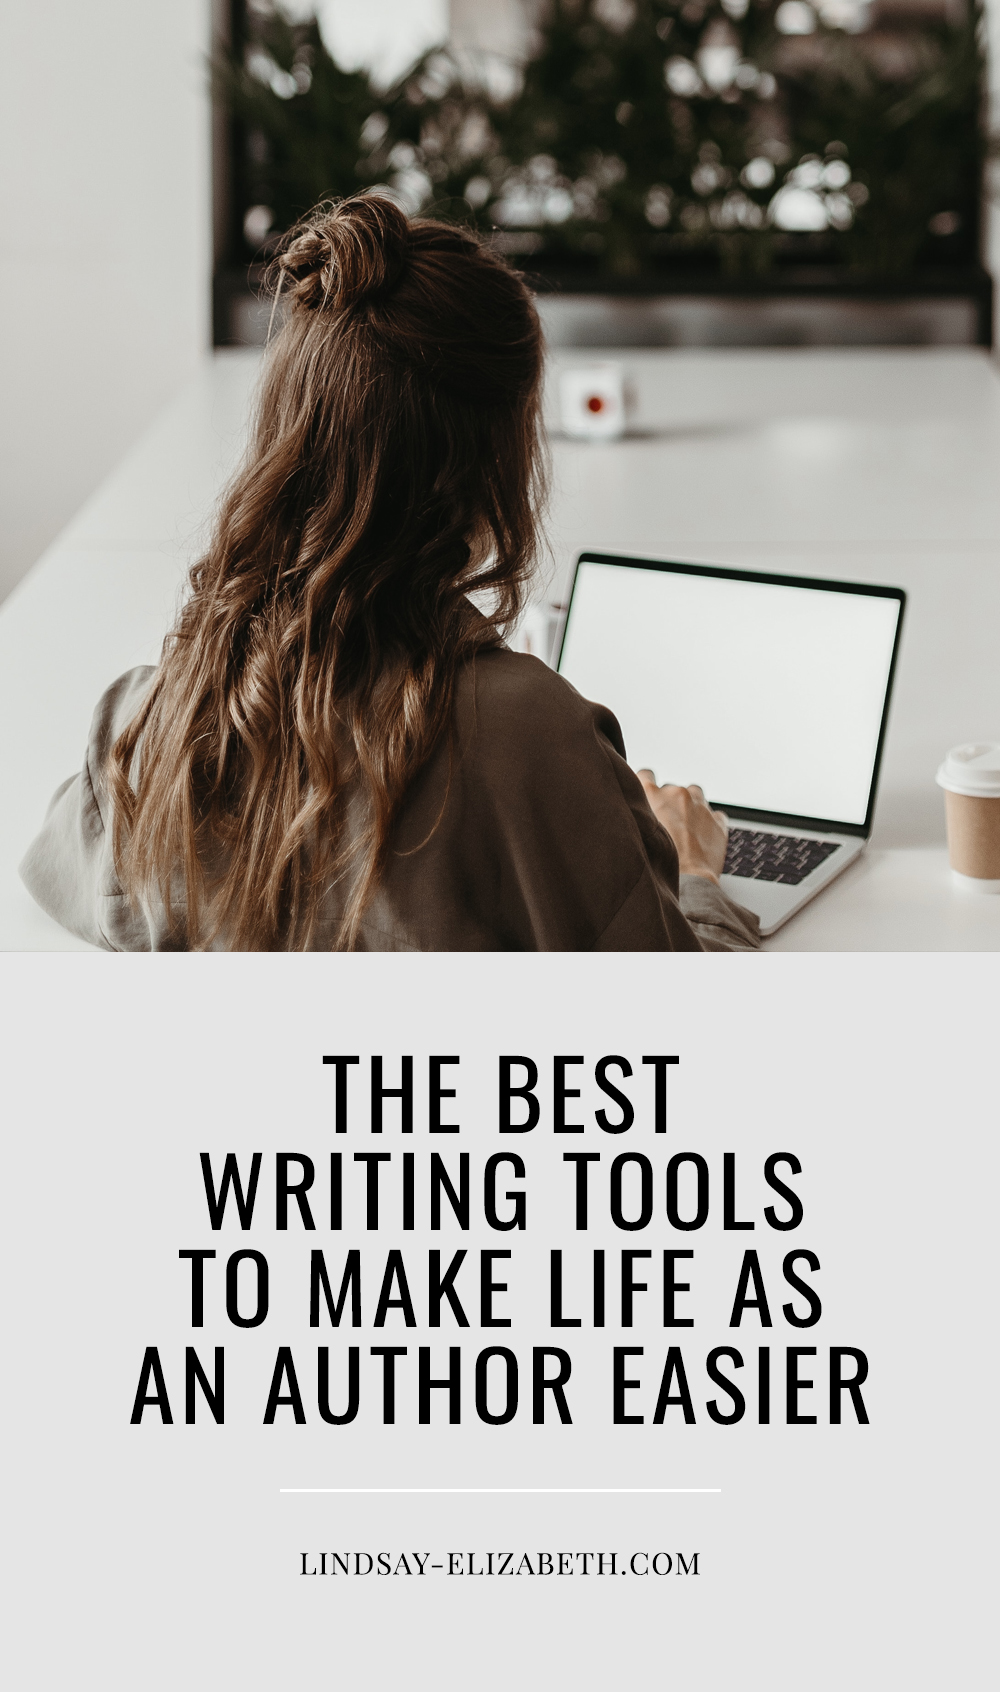 As a writer, you only *need* a pen and paper to tell your story, but there are a lot of amazing tools out there that can help make the process easier and more efficient. Check out this list of writing tools for authors to support every step of the writing process, including organizing notes, gathering inspiration, time management, and of course, writing a novel (or whatever project you're working on). #writingtips #writingadvice #storytelling #writinganovel #writingabook